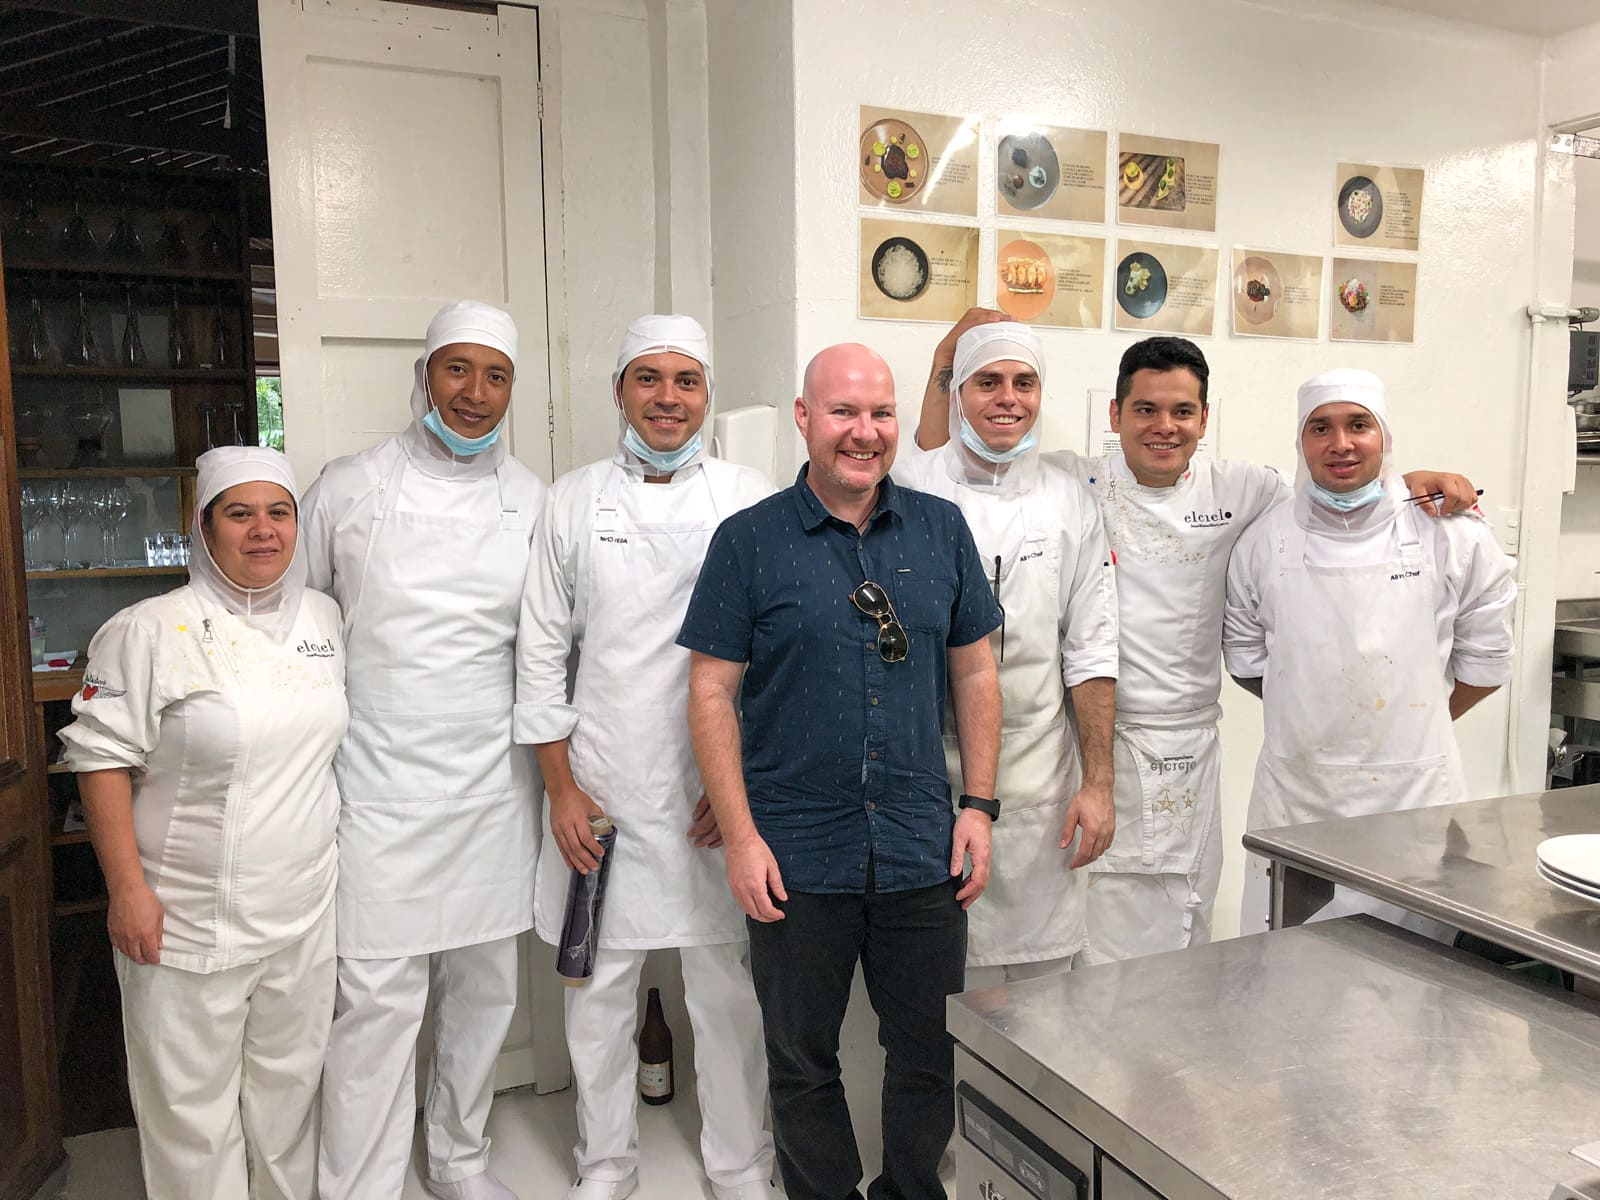 Thanking the chefs at El Cielo restaurant in Medellín, Colombia